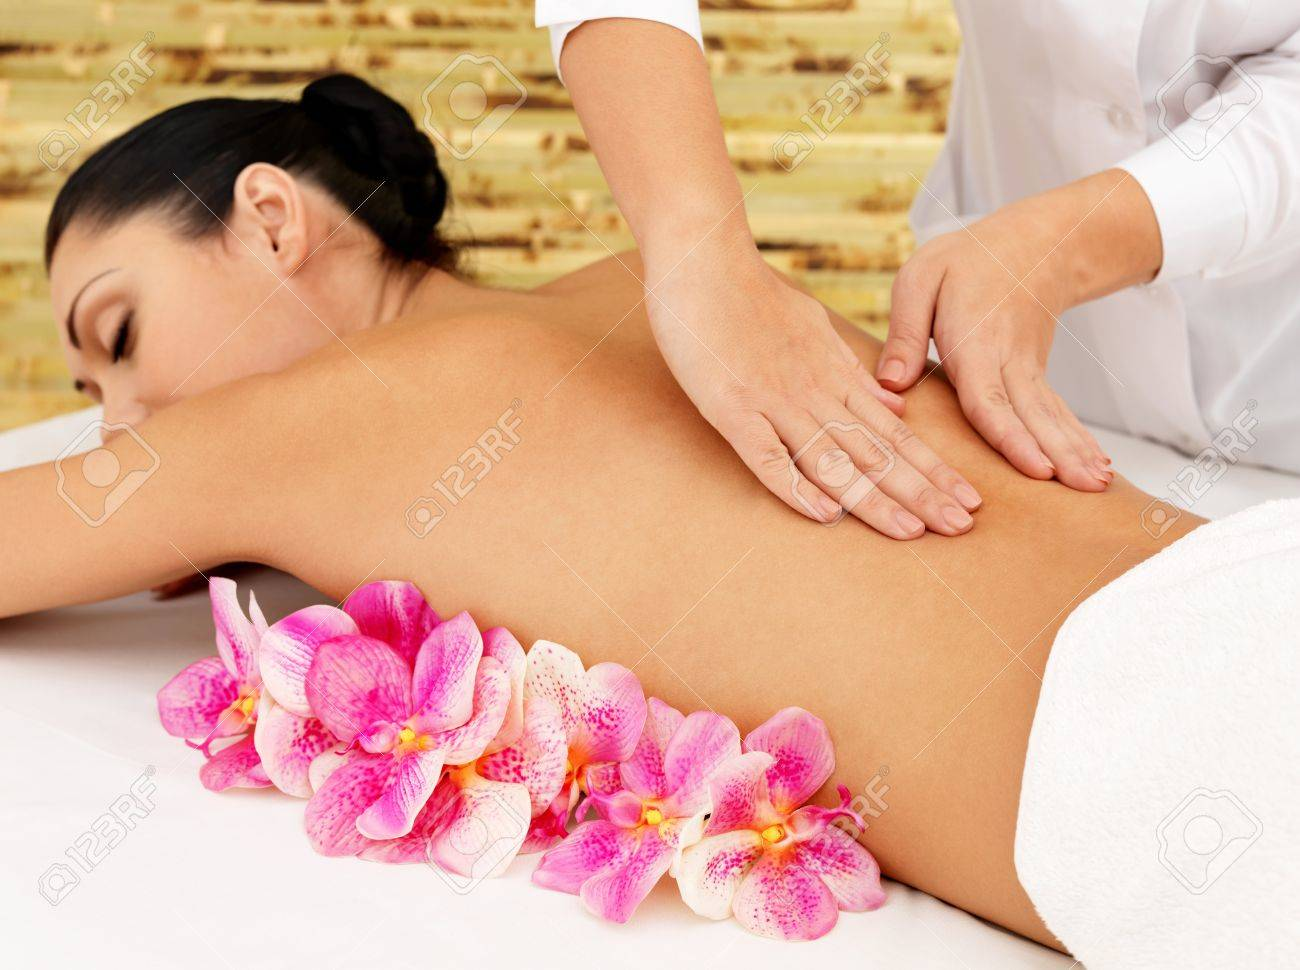 Woman on healthy massage of body in the spa salon. Beauty treatment concept. Stock Photo - 17853345